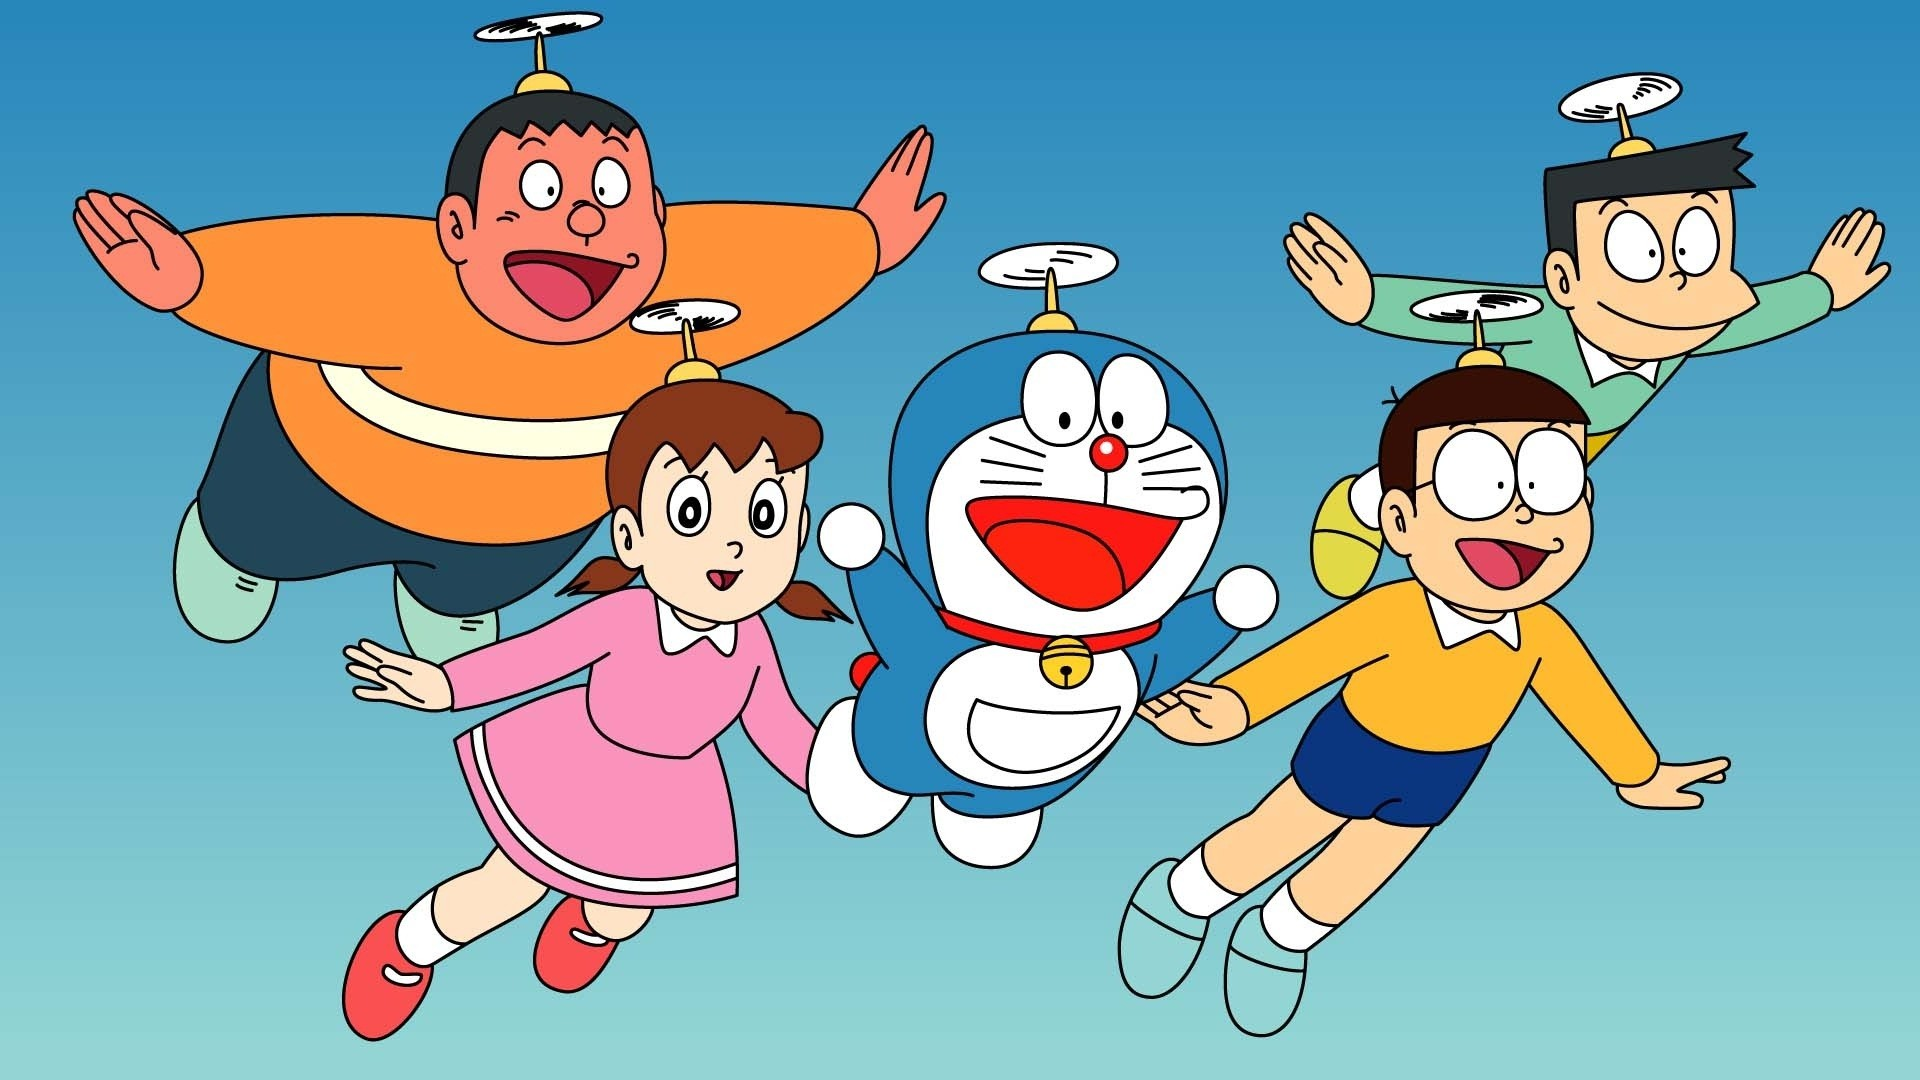 1920x1080 hd doraemon cartoon - photo #11